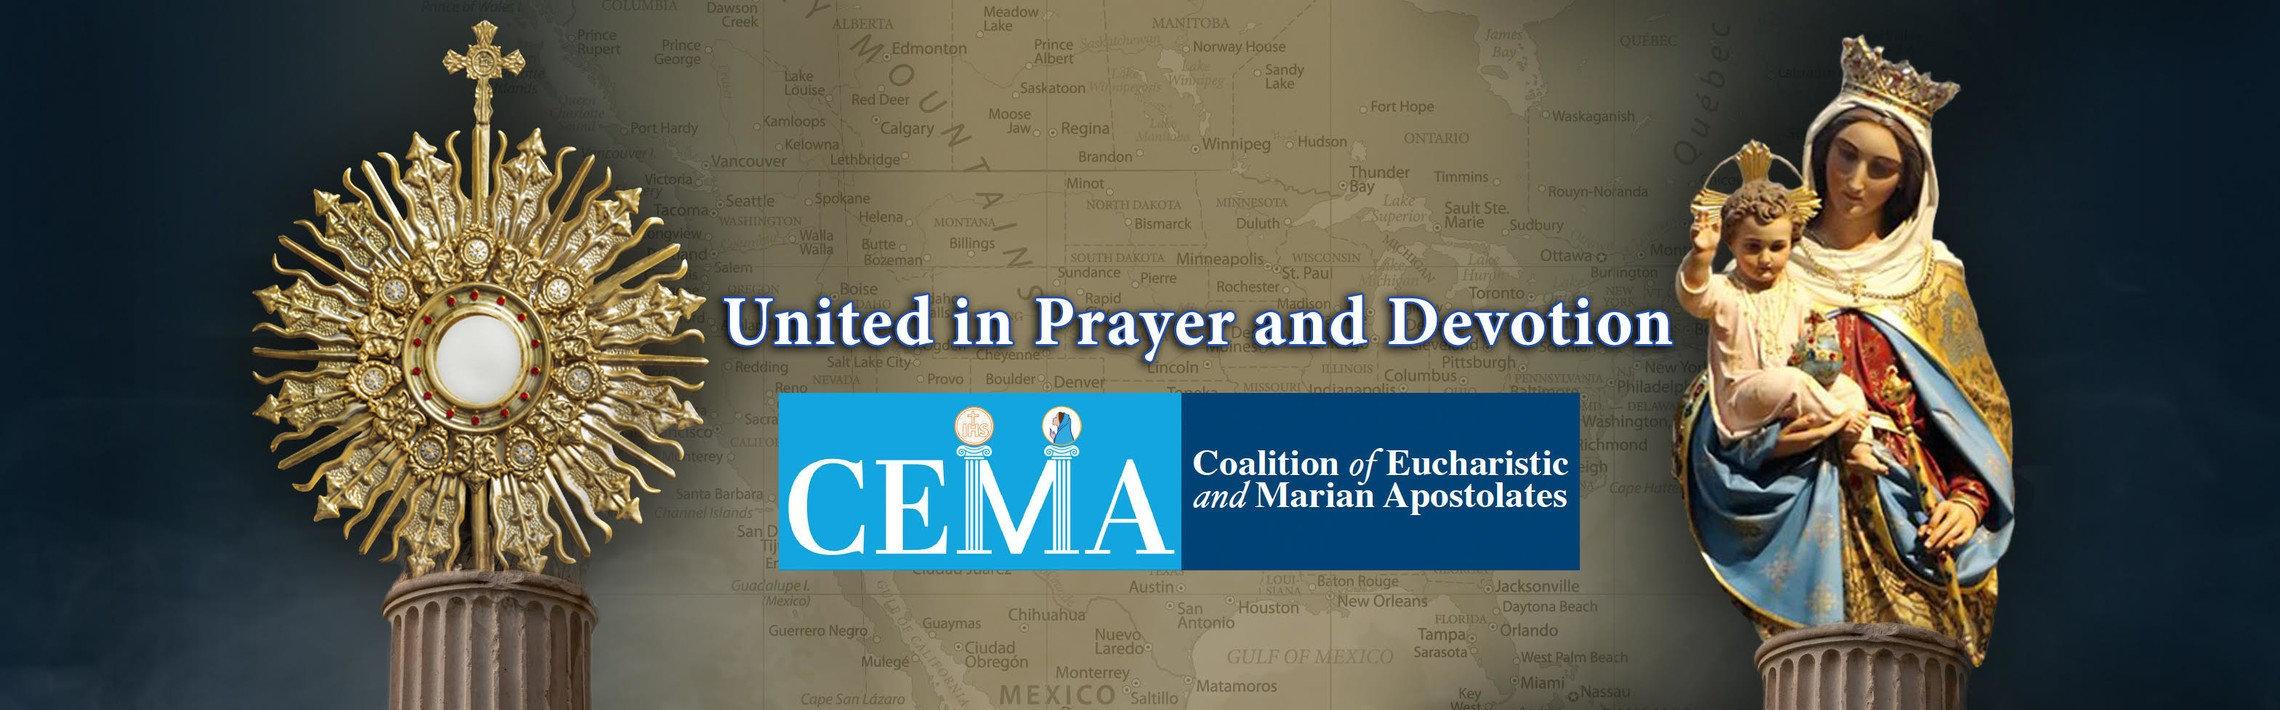 Cema Home Page Graphic